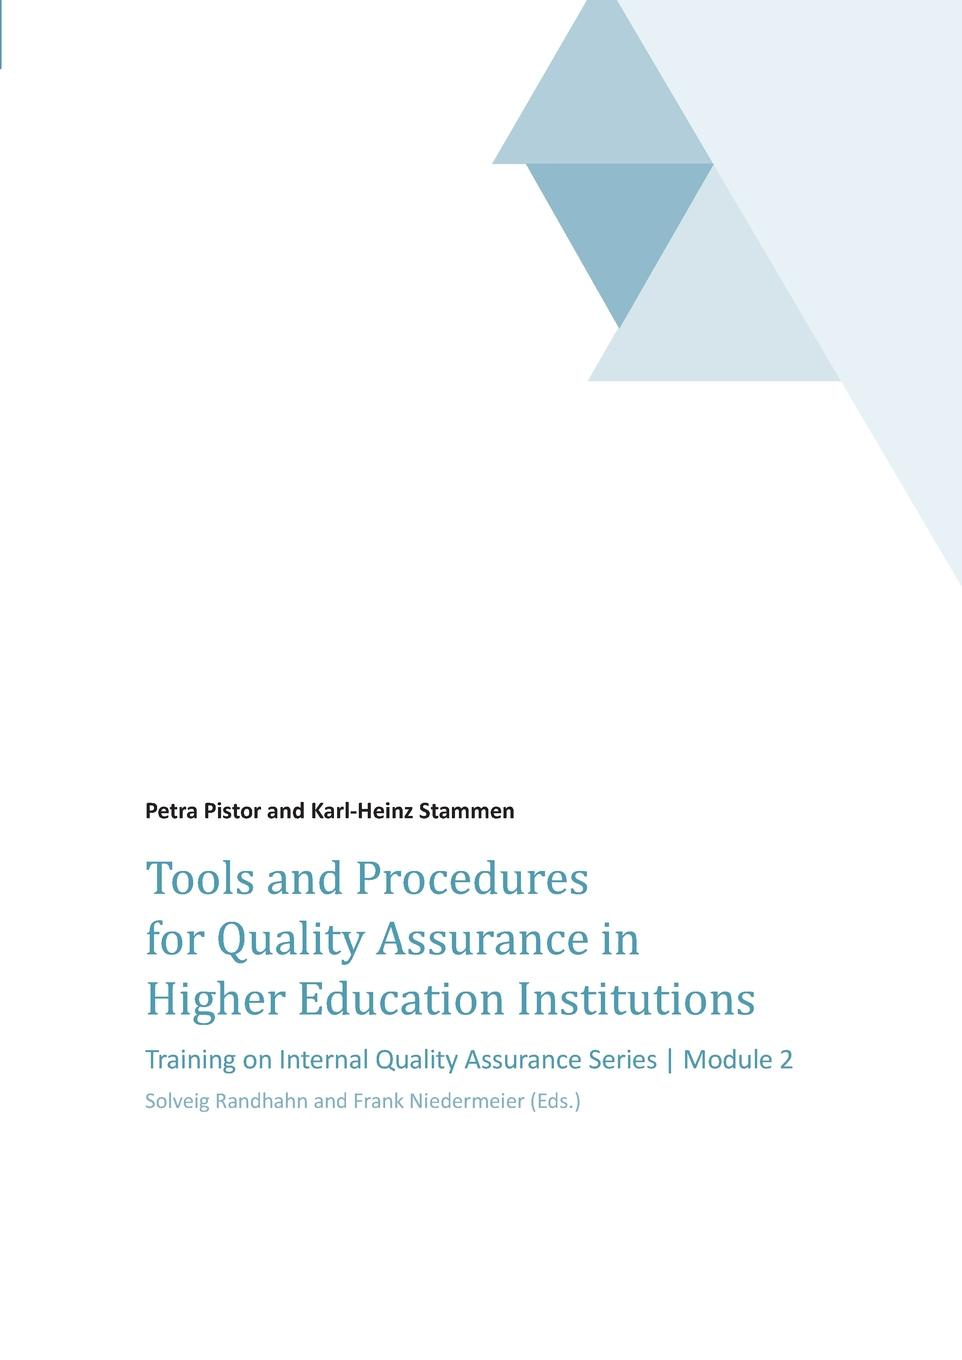 Petra Pistor Tools and Procedures for Quality Assurance in Higher Education Institutions mehmet sahinoglu cyber risk informatics engineering evaluation with data science